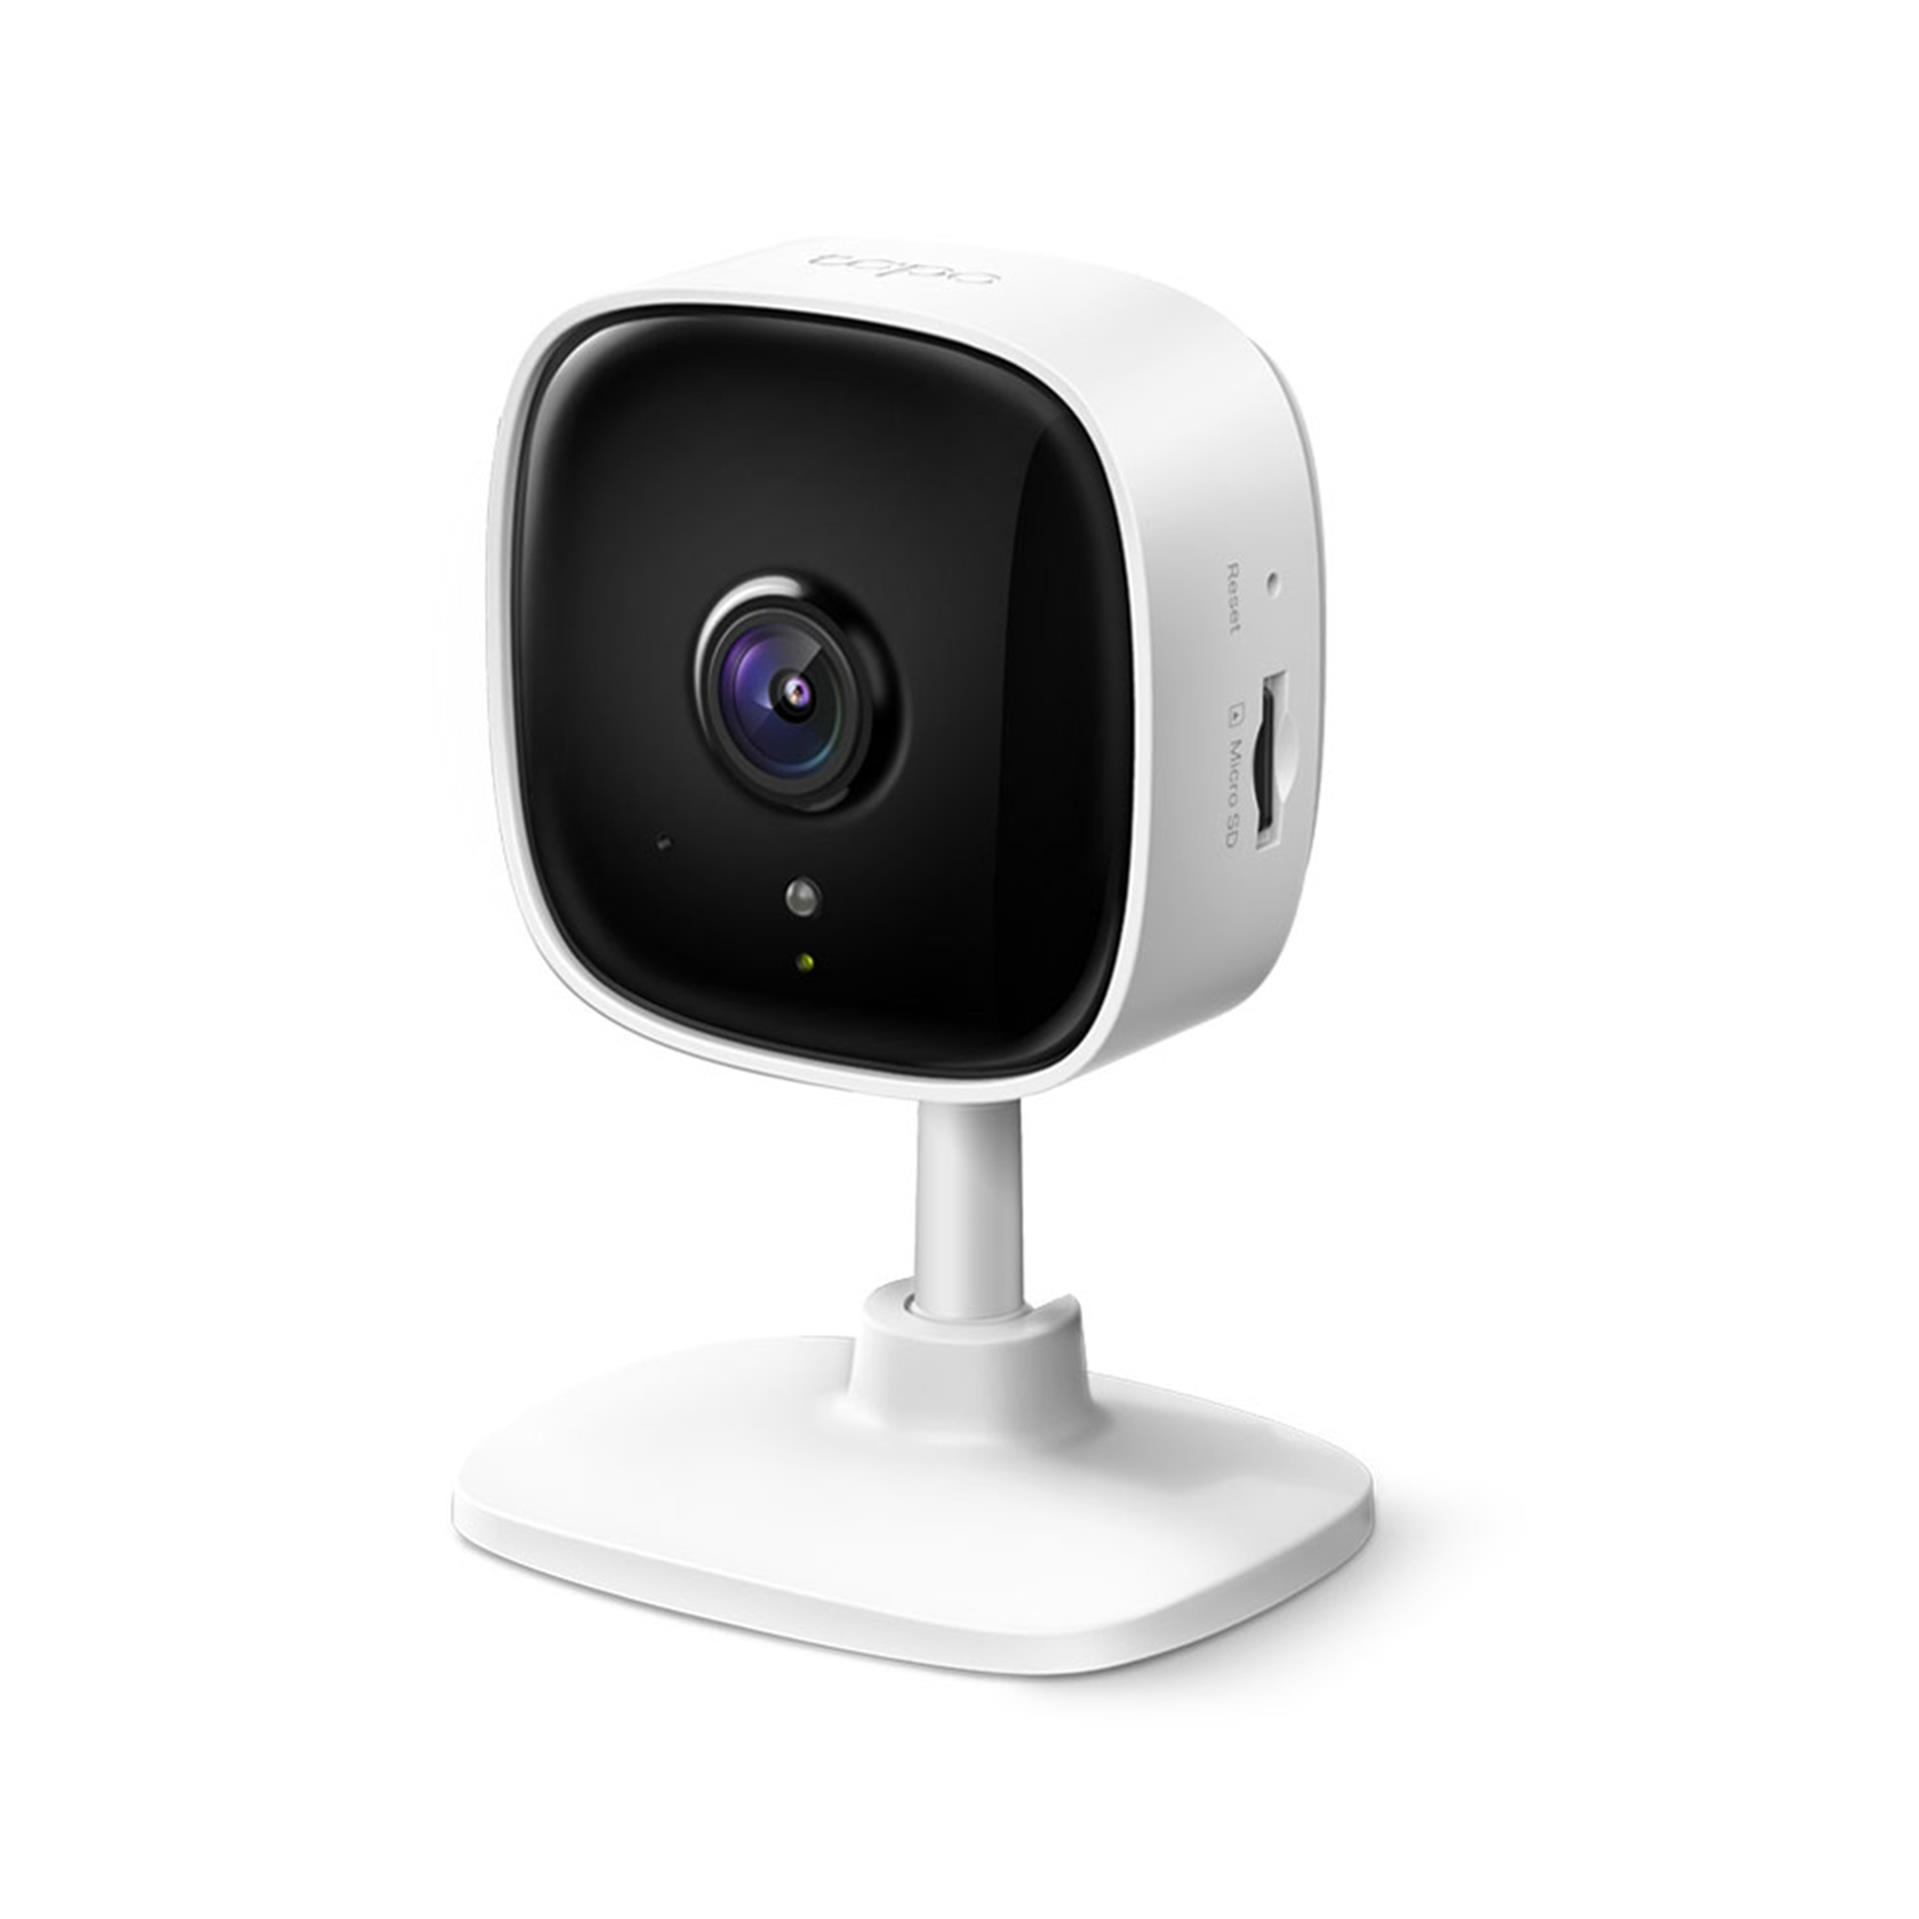 TP-LINK Full HD Wi-FI Day/Night view - TAPO C100